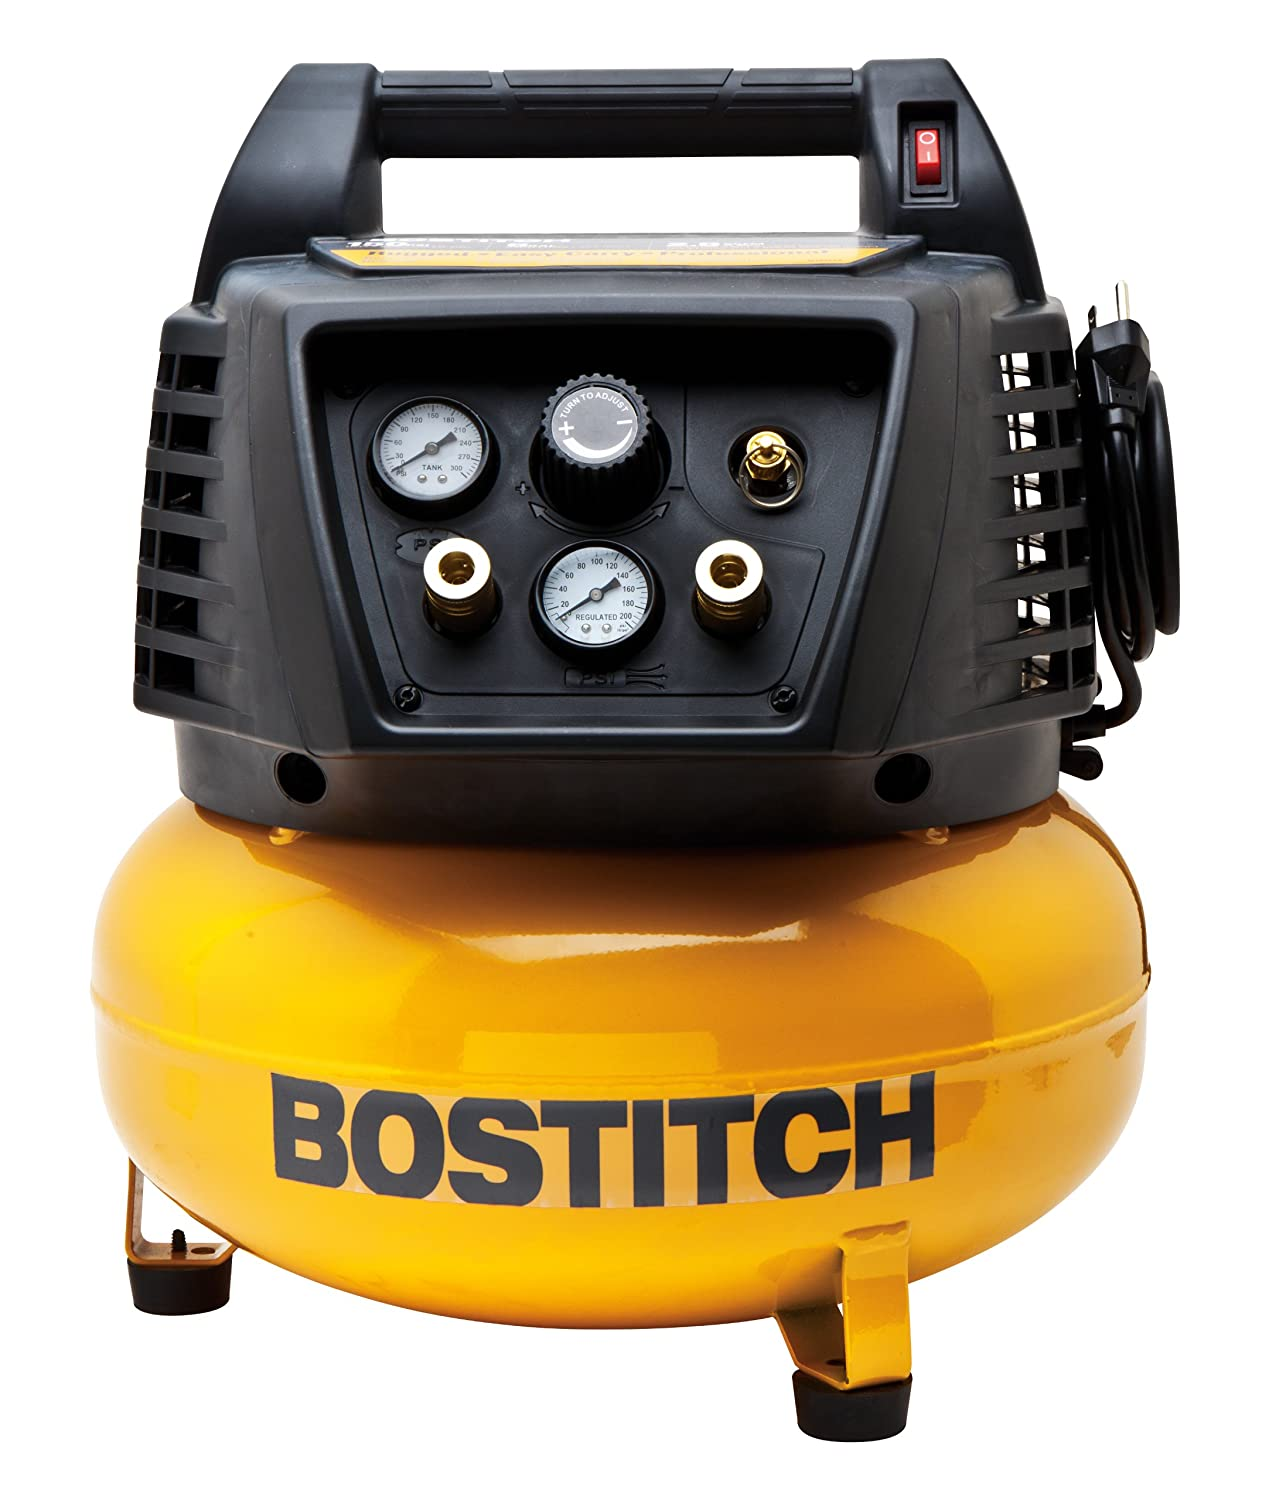 Bostitch 6 Gallon Air Compressor reviews